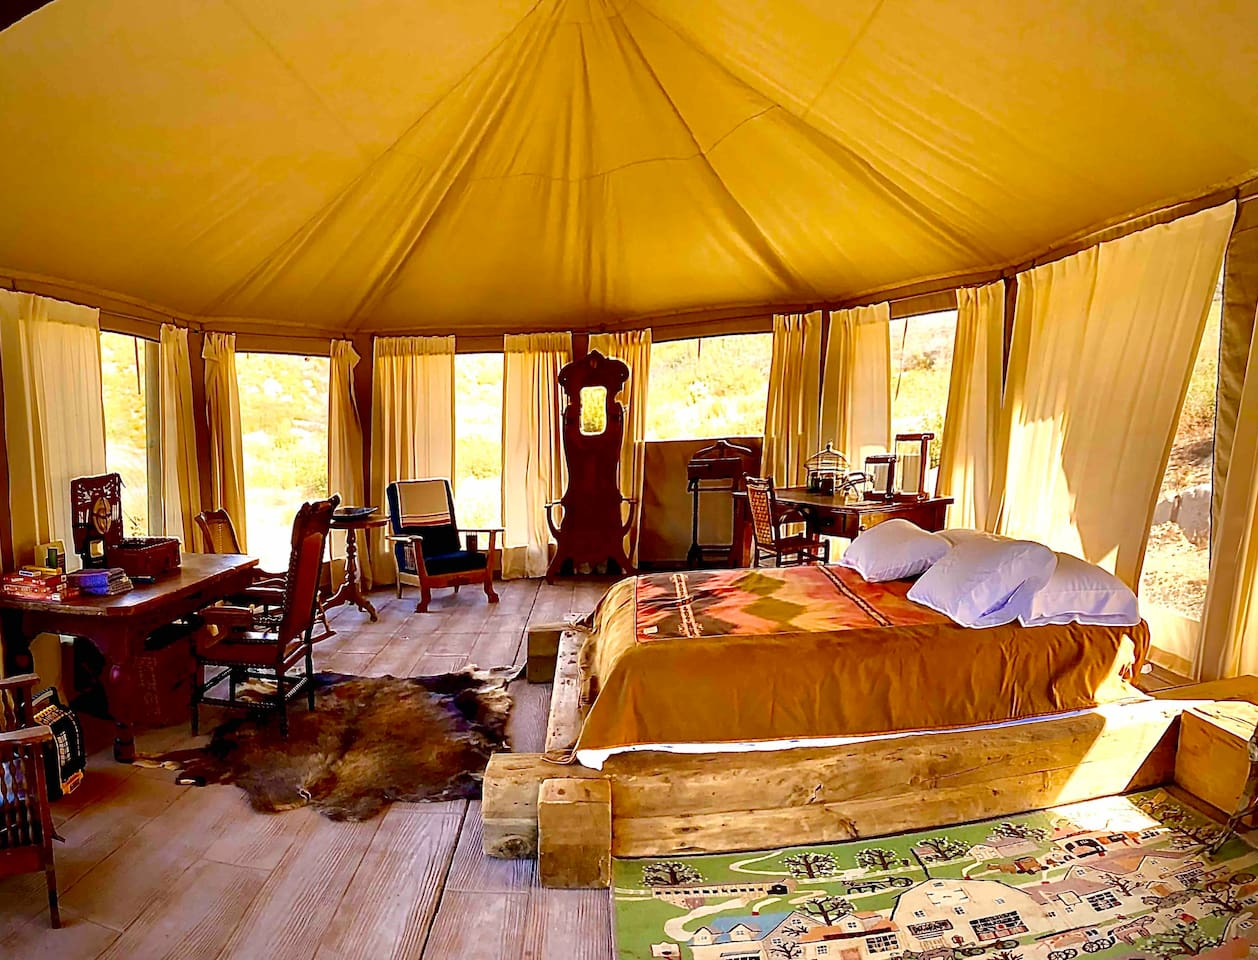 The inside of the Fish Camp Tent.  It was sourced from  South Africa where they are used for luxury safaris. Nearby kitchen and bathrooms with hot and cold water and showers make the Tent equipped for comfort.  The Tent has lake and mountain views.